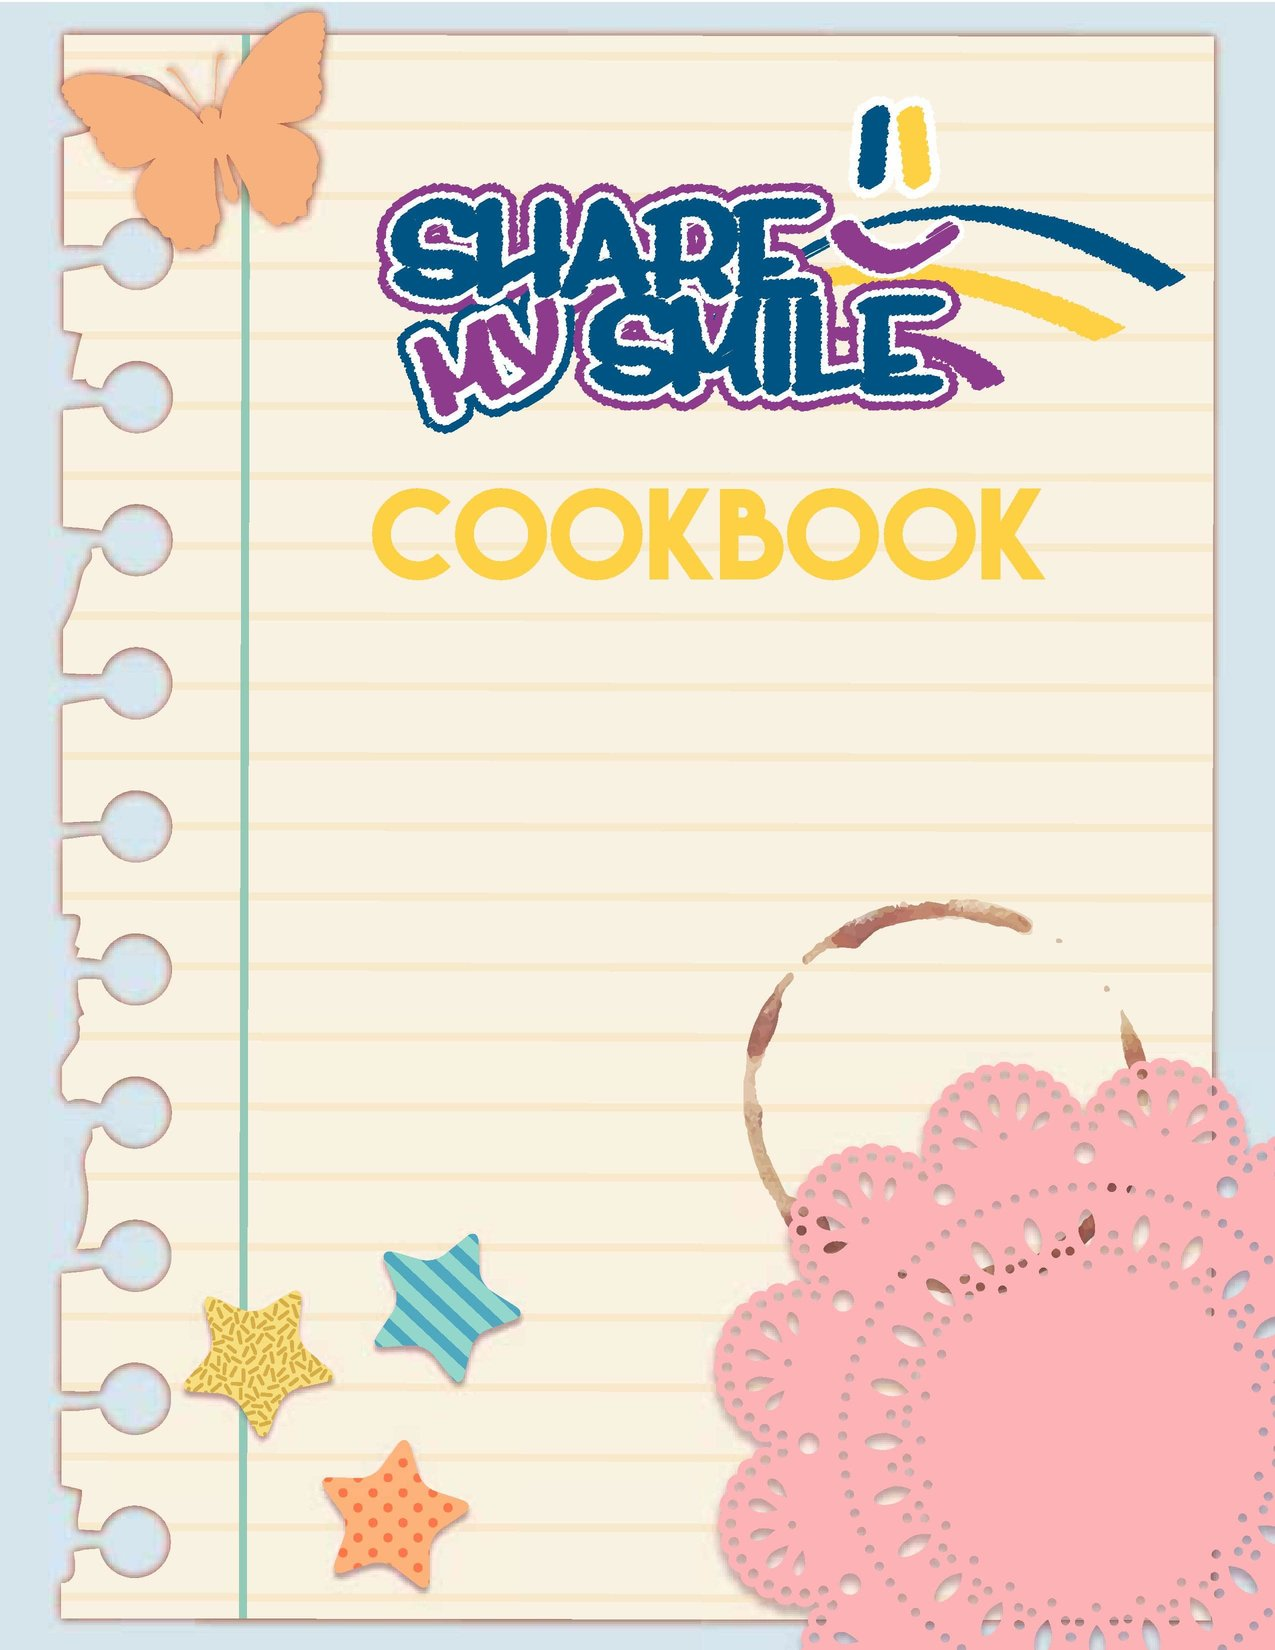 Order Your Share My Smile Cookbook Today to Support Foster & Adoptive Youth & Families!